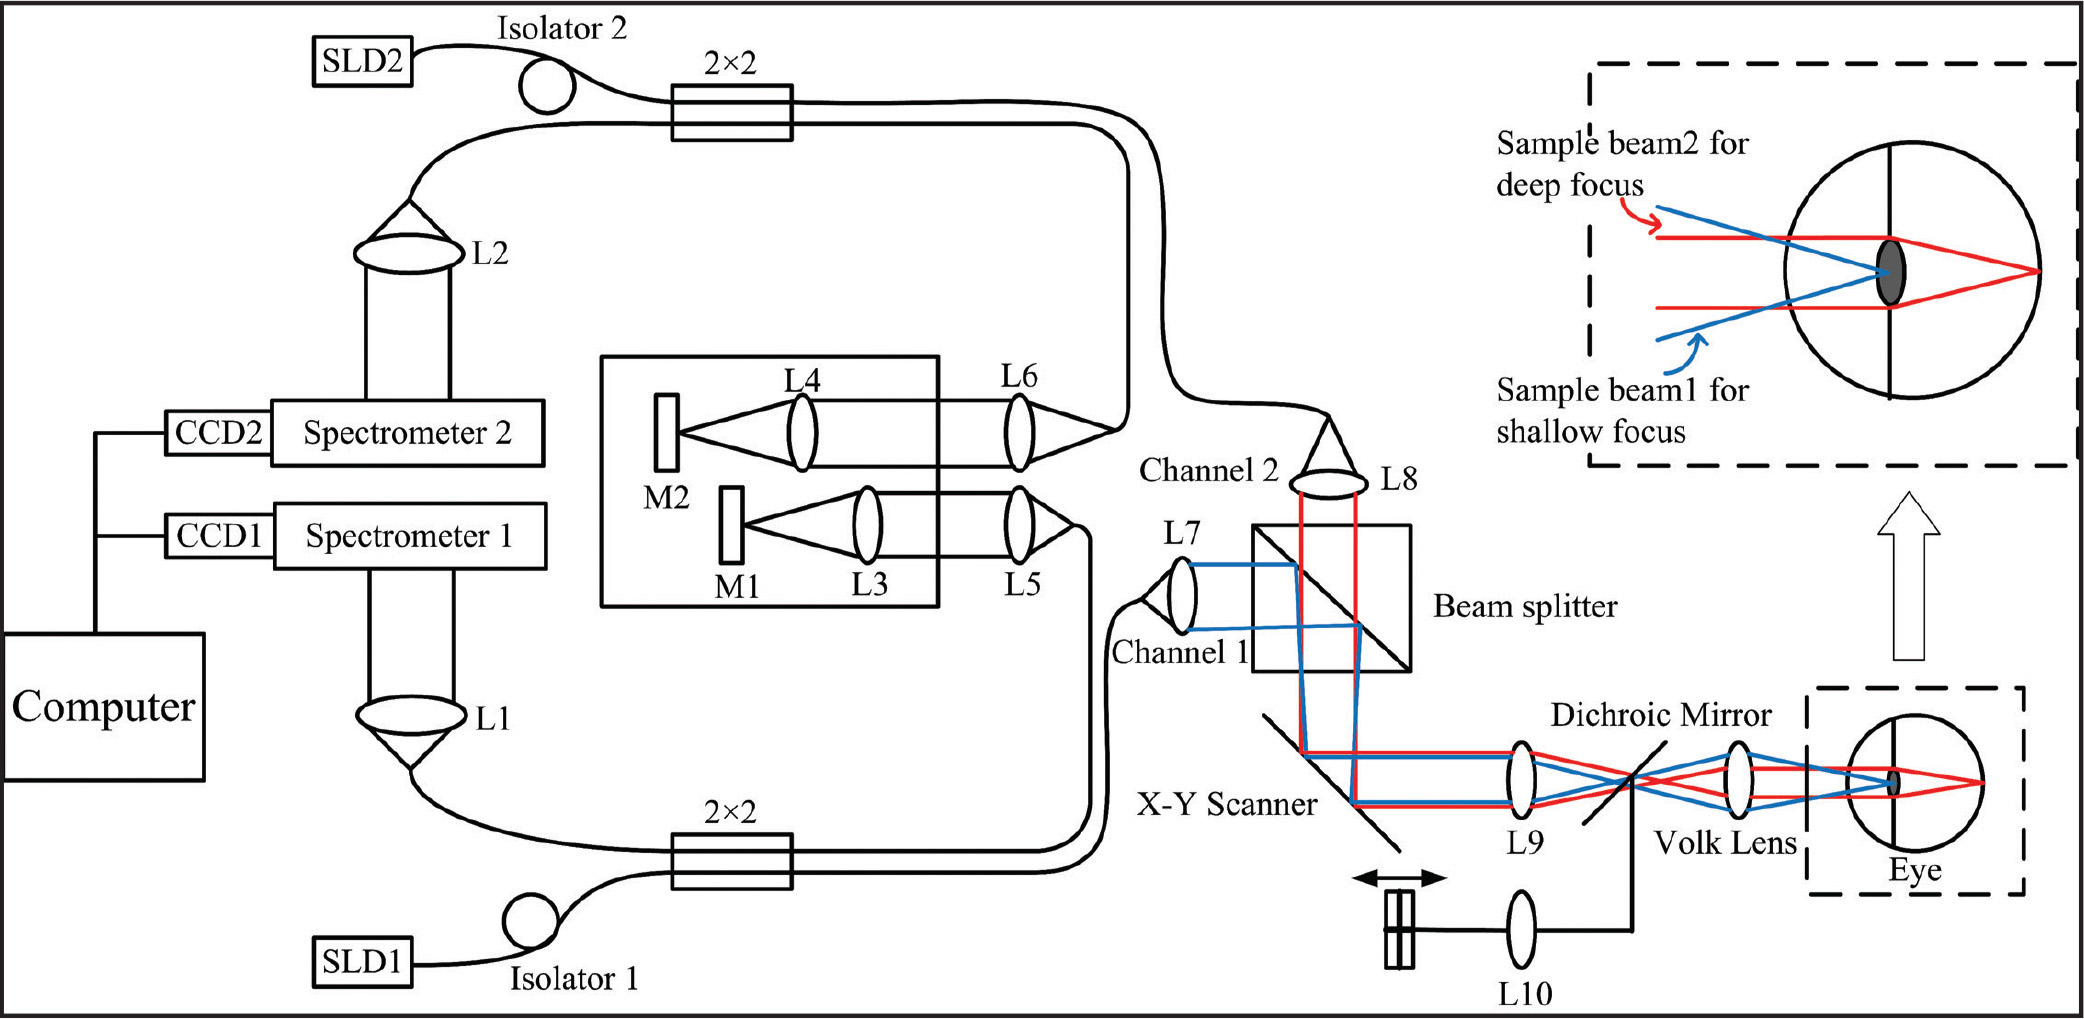 Freightliner Fl70 Fuse Box Diagram. Diagrams. Wiring